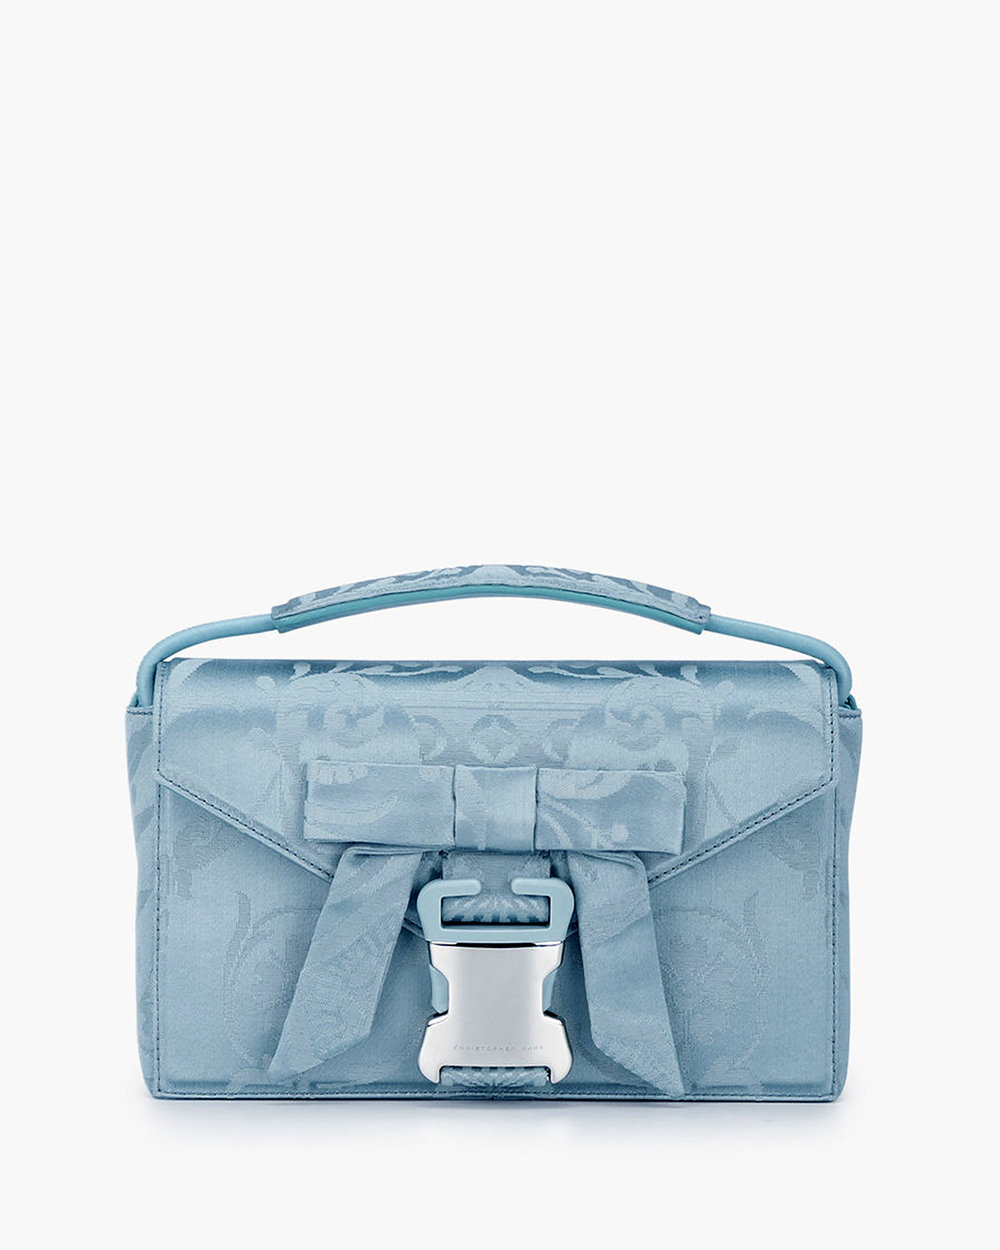 christopher-kane-bag.jpg